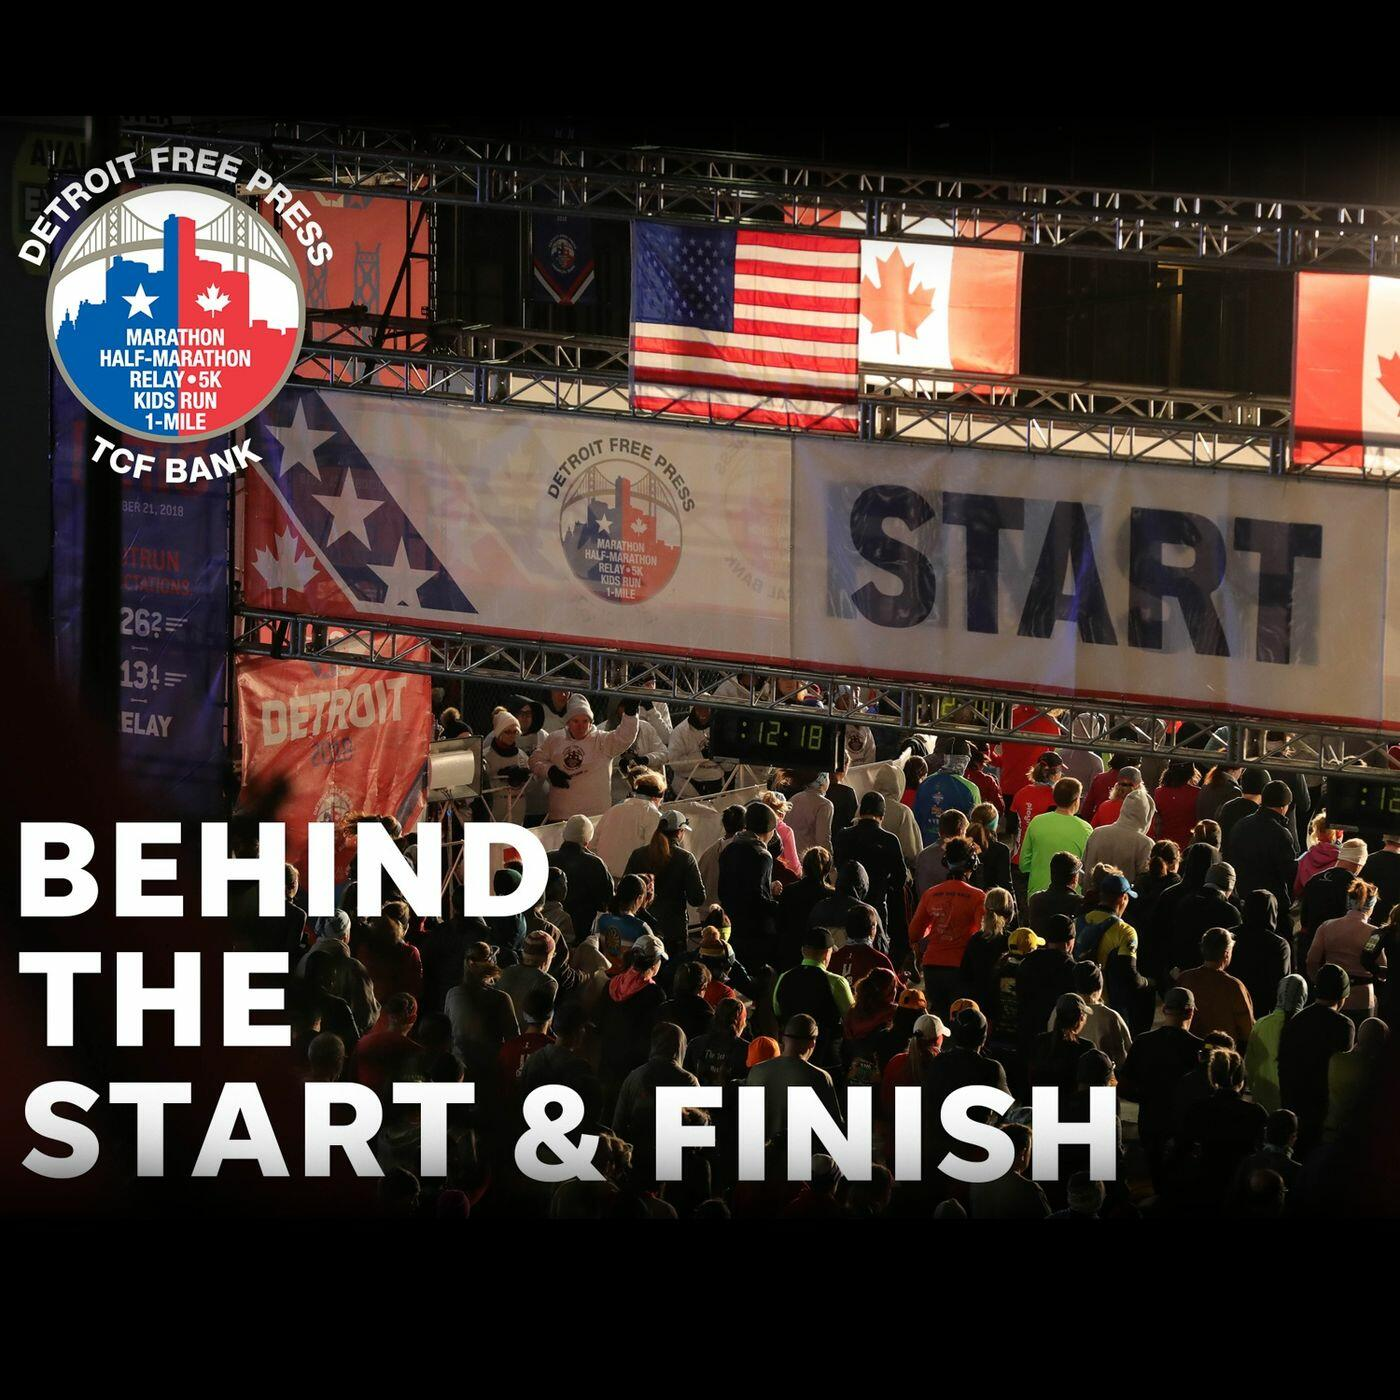 Behind the Start & Finish